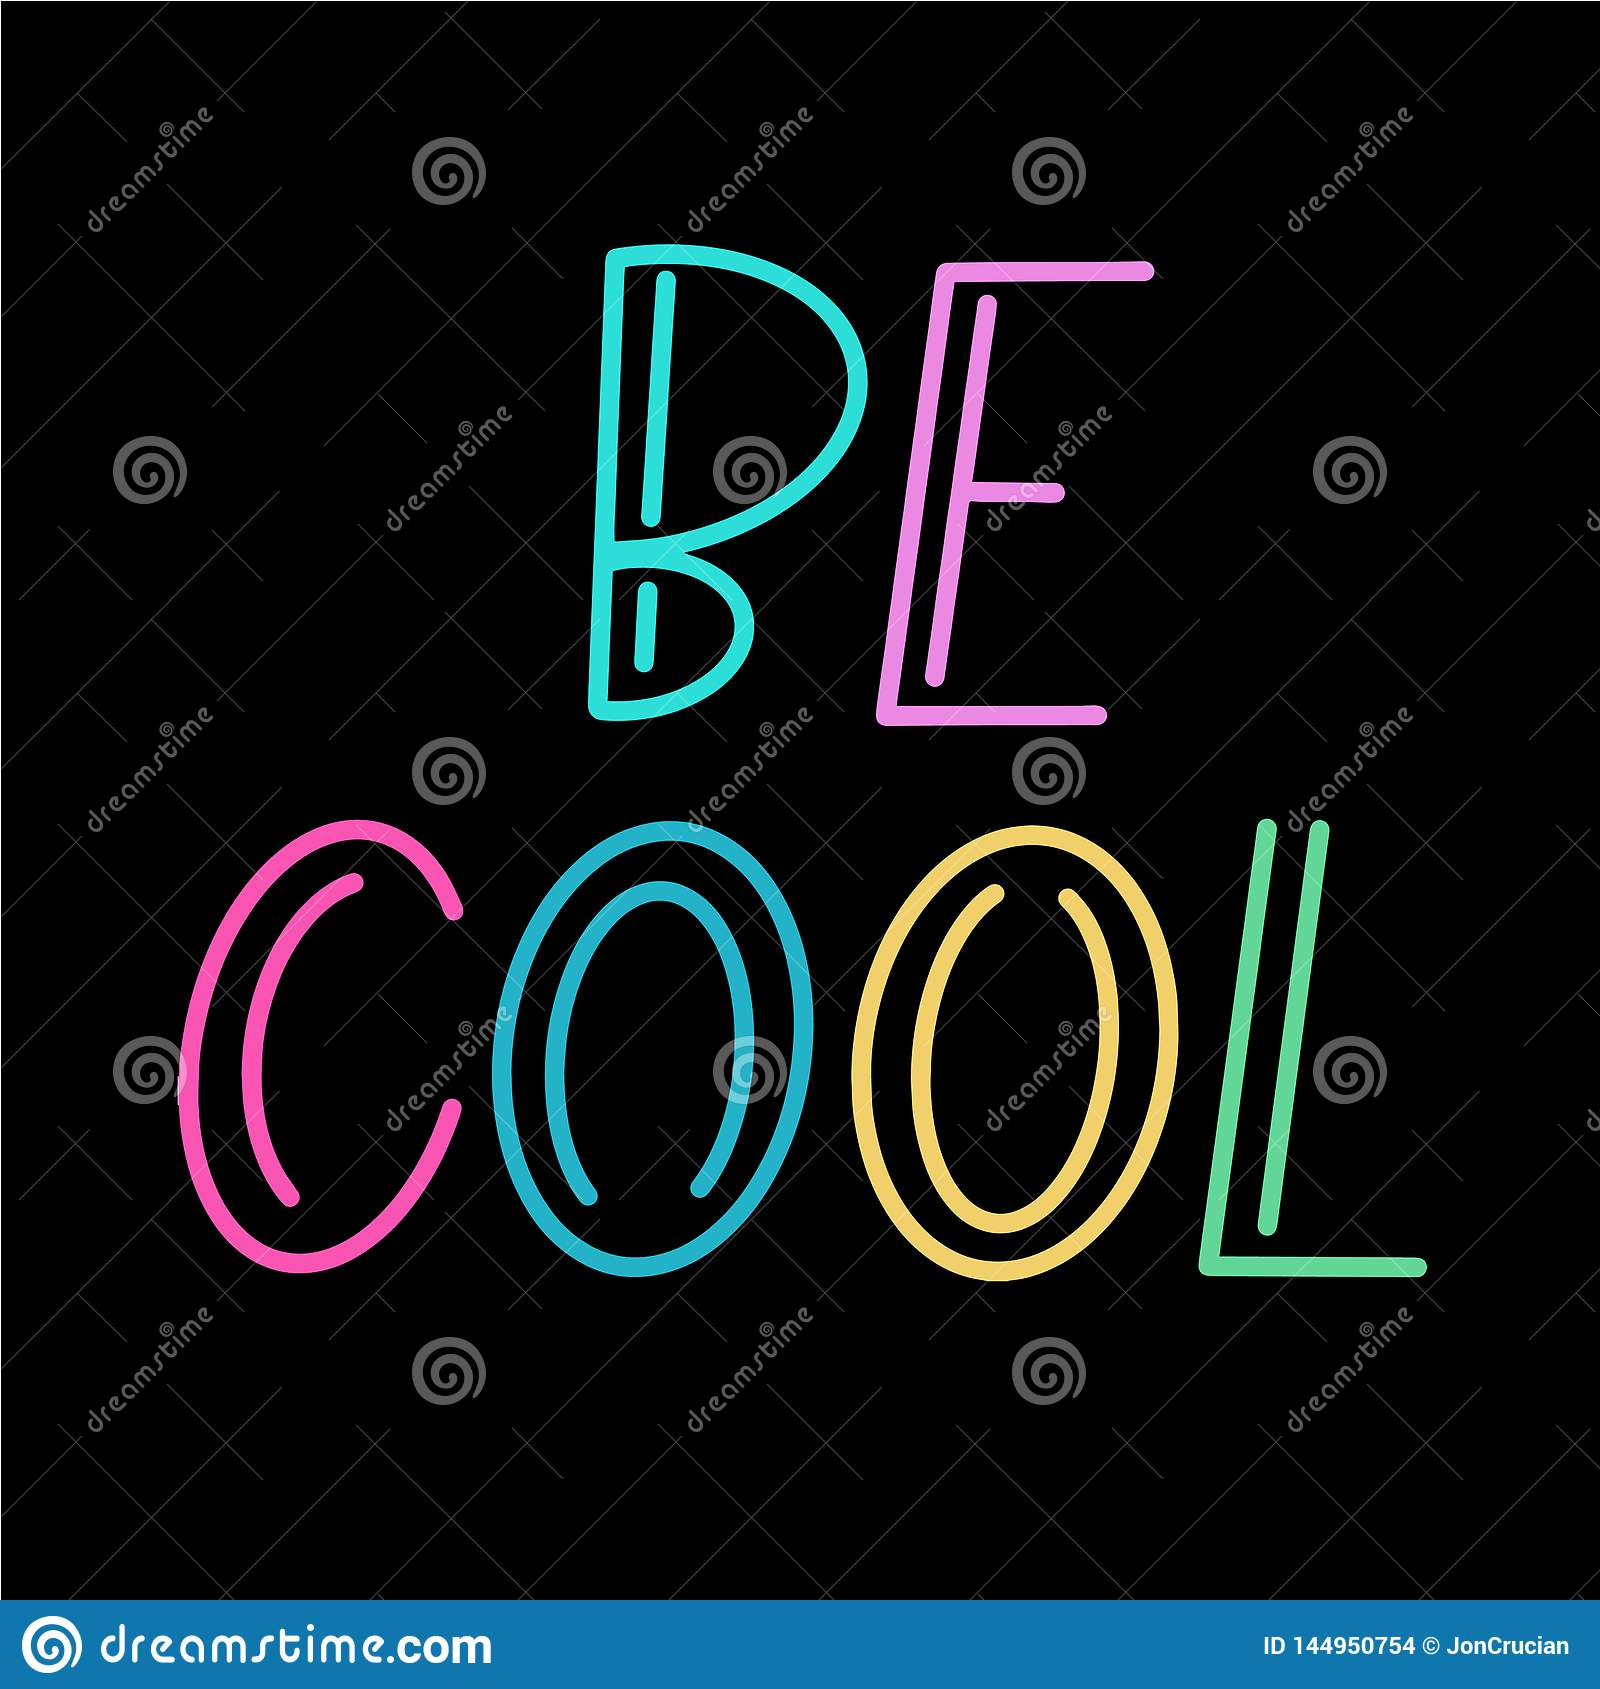 Be Cool Colorful Font On Black Background Stock Vector Illustration Of Green Vector 144950754